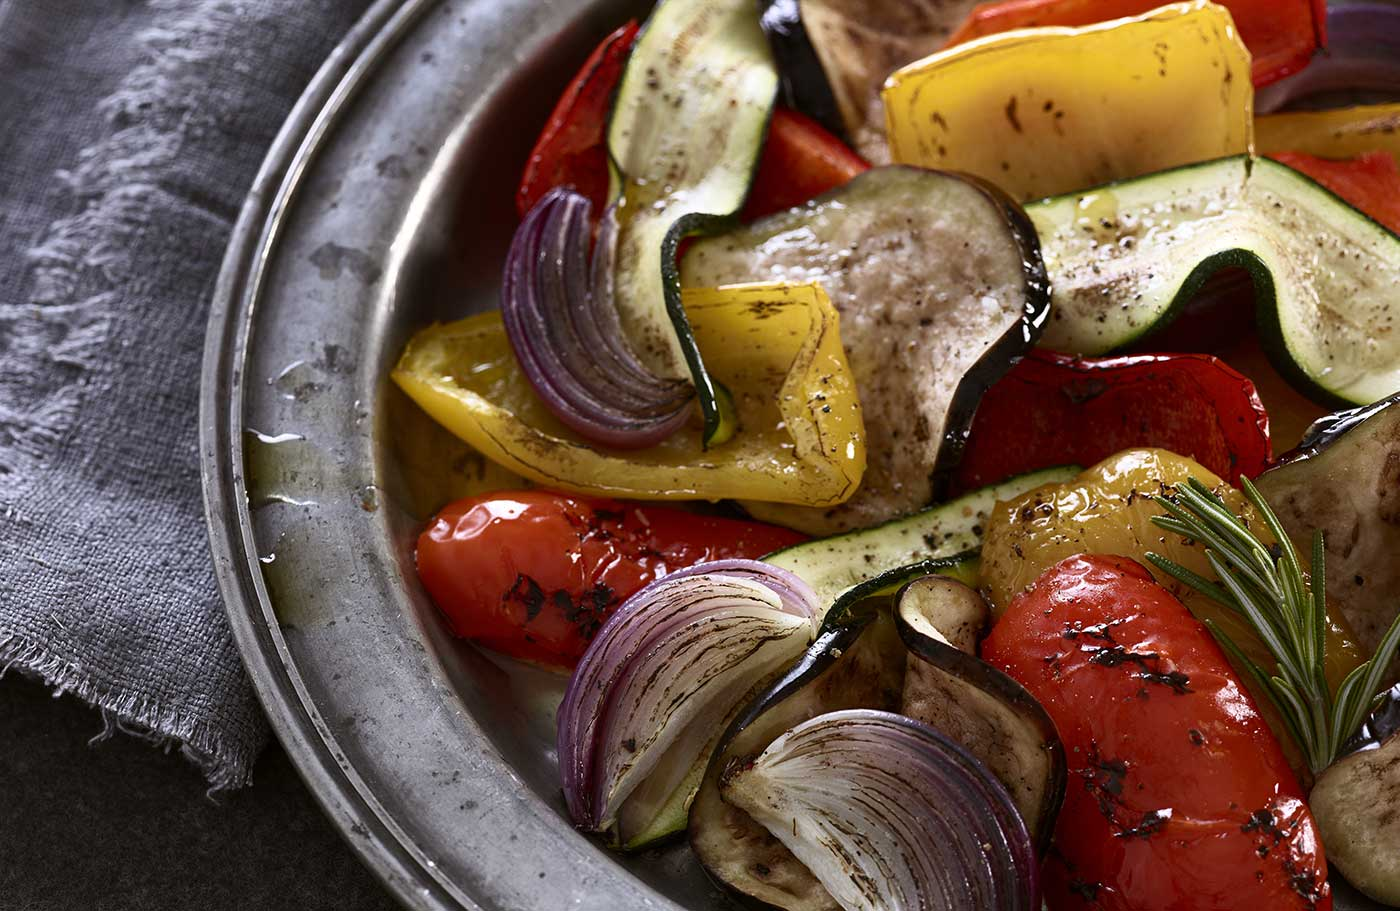 Grilled Vegetables styled by Toronto food stylist Marianne Wren